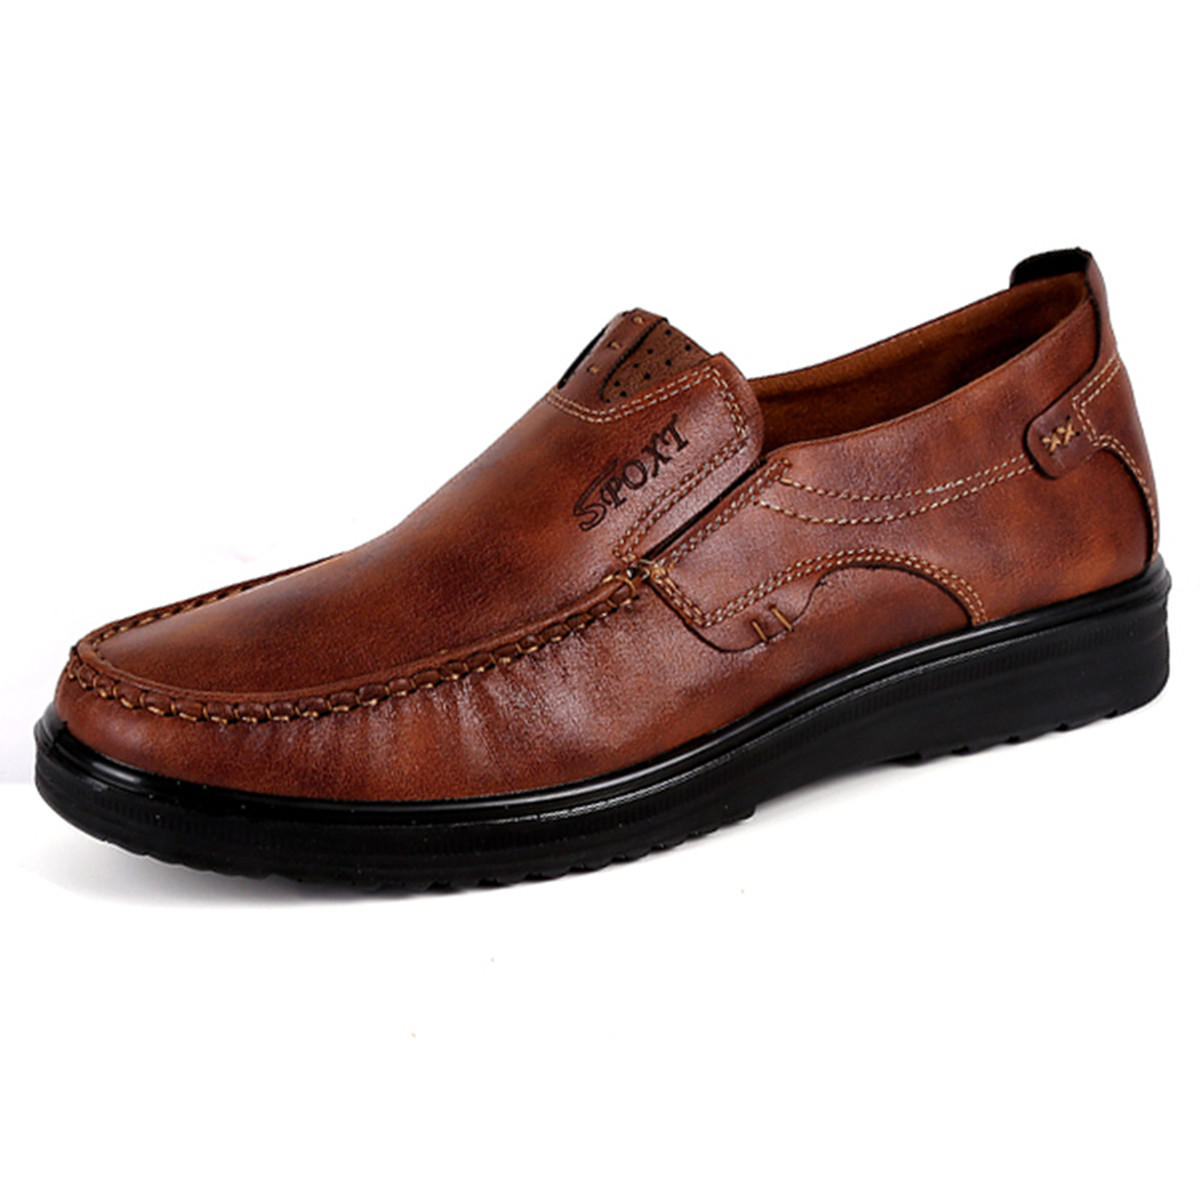 85a08e238eb Menico Large Size Men Comfy Casual Microfiber Leather Oxfords Shoes COD.  Brand  Menico